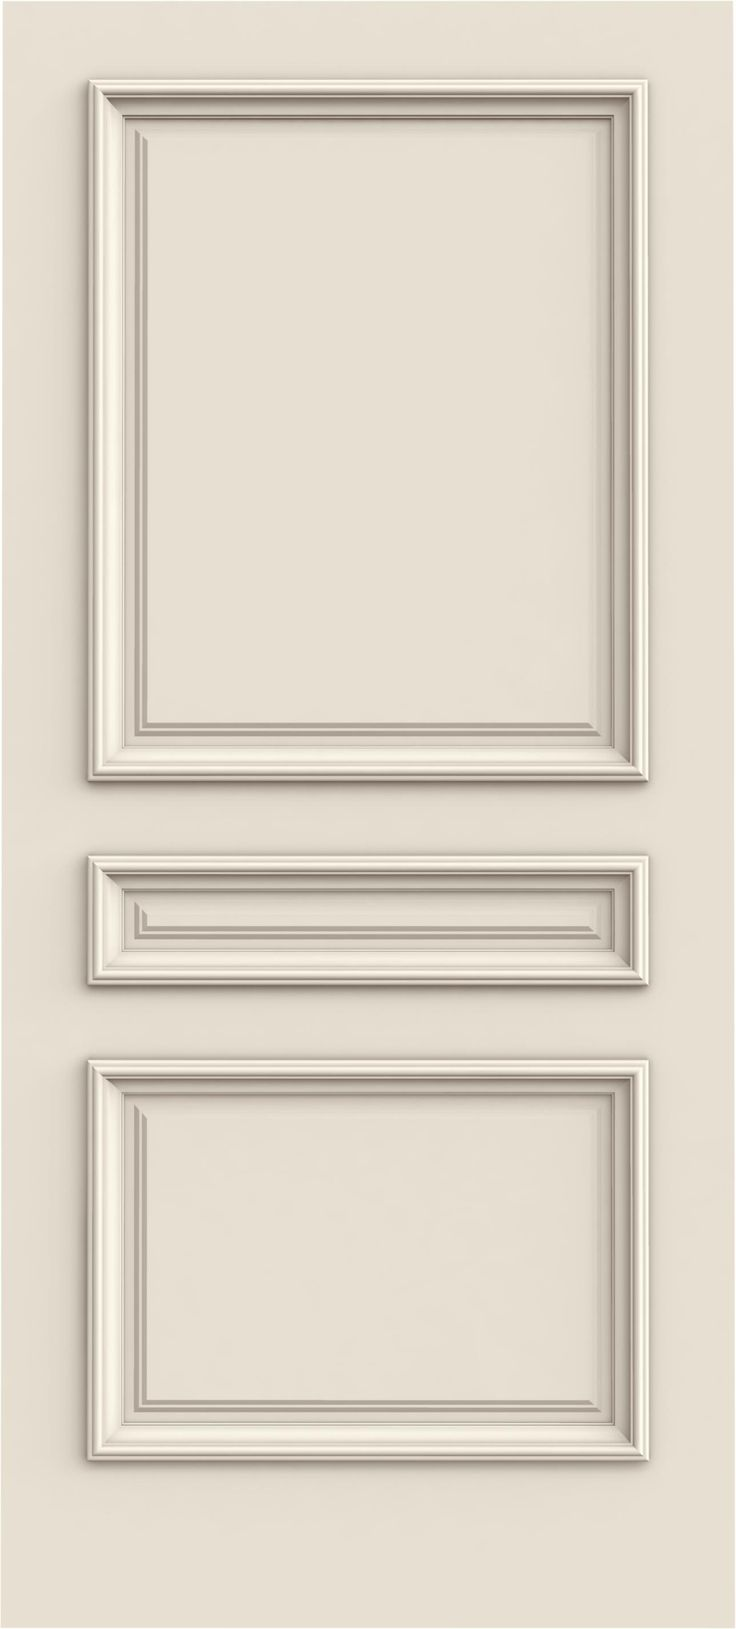 Tria™ Composite R-Series All Panel Interior Door | JELD-WEN Doors & Windows